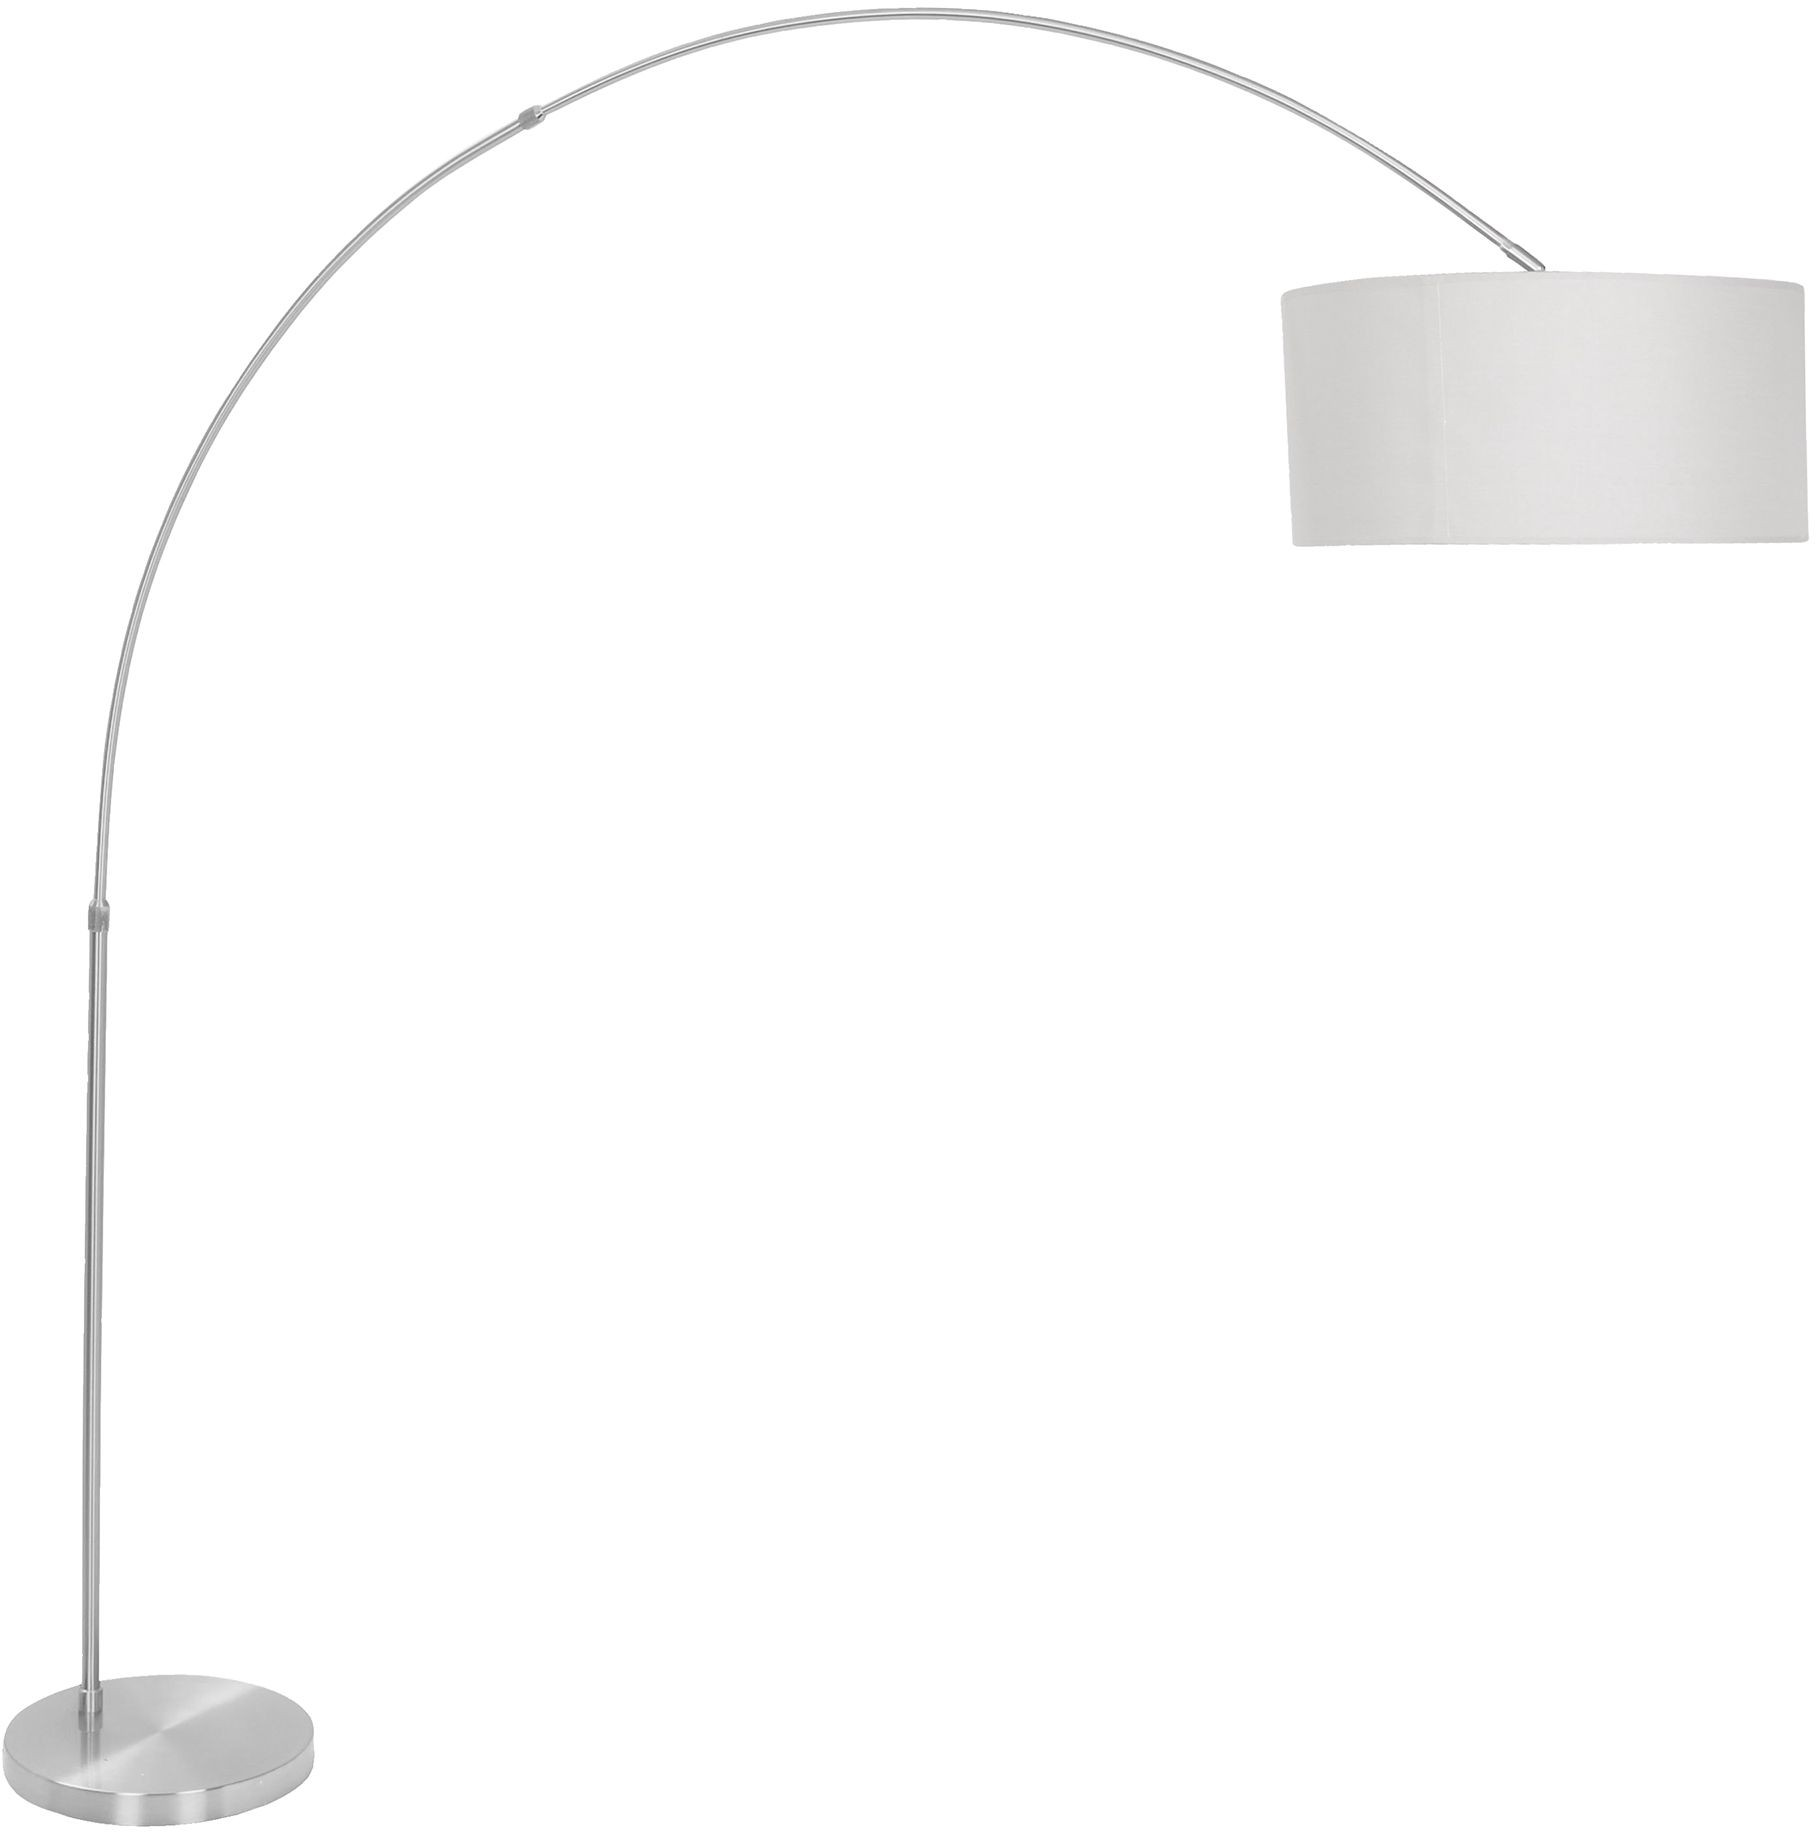 Salon gray floor lamp from lumisource coleman furniture for Lumisource salon floor lamp in white